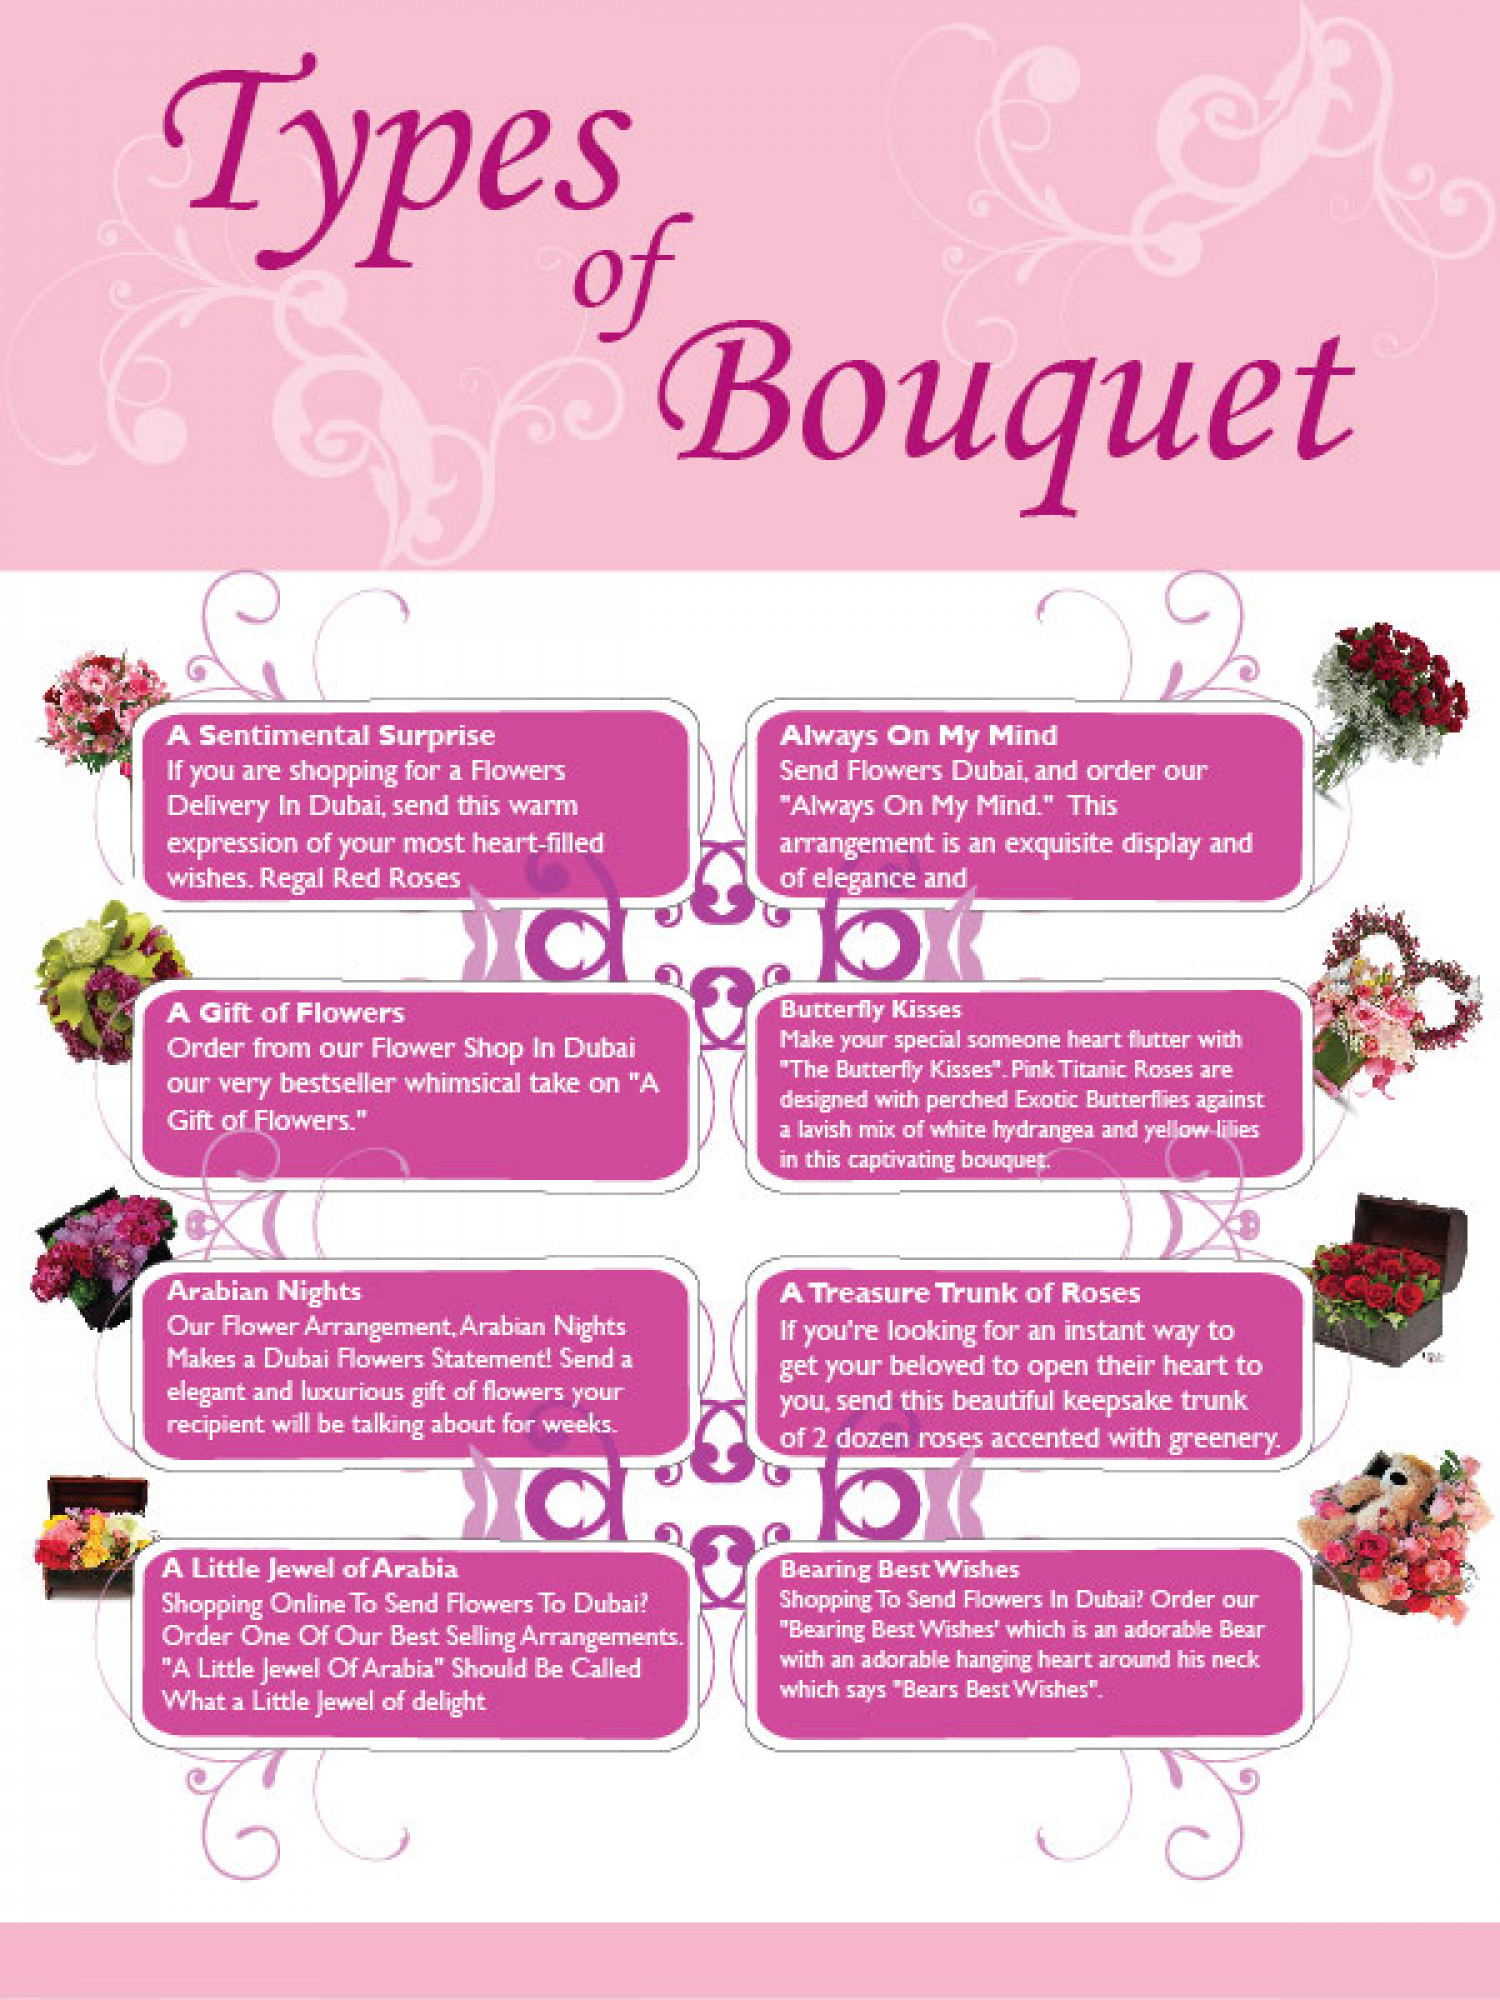 Flowers flowers bouquet and its types visual flowers flowers bouquet and its types infographic izmirmasajfo